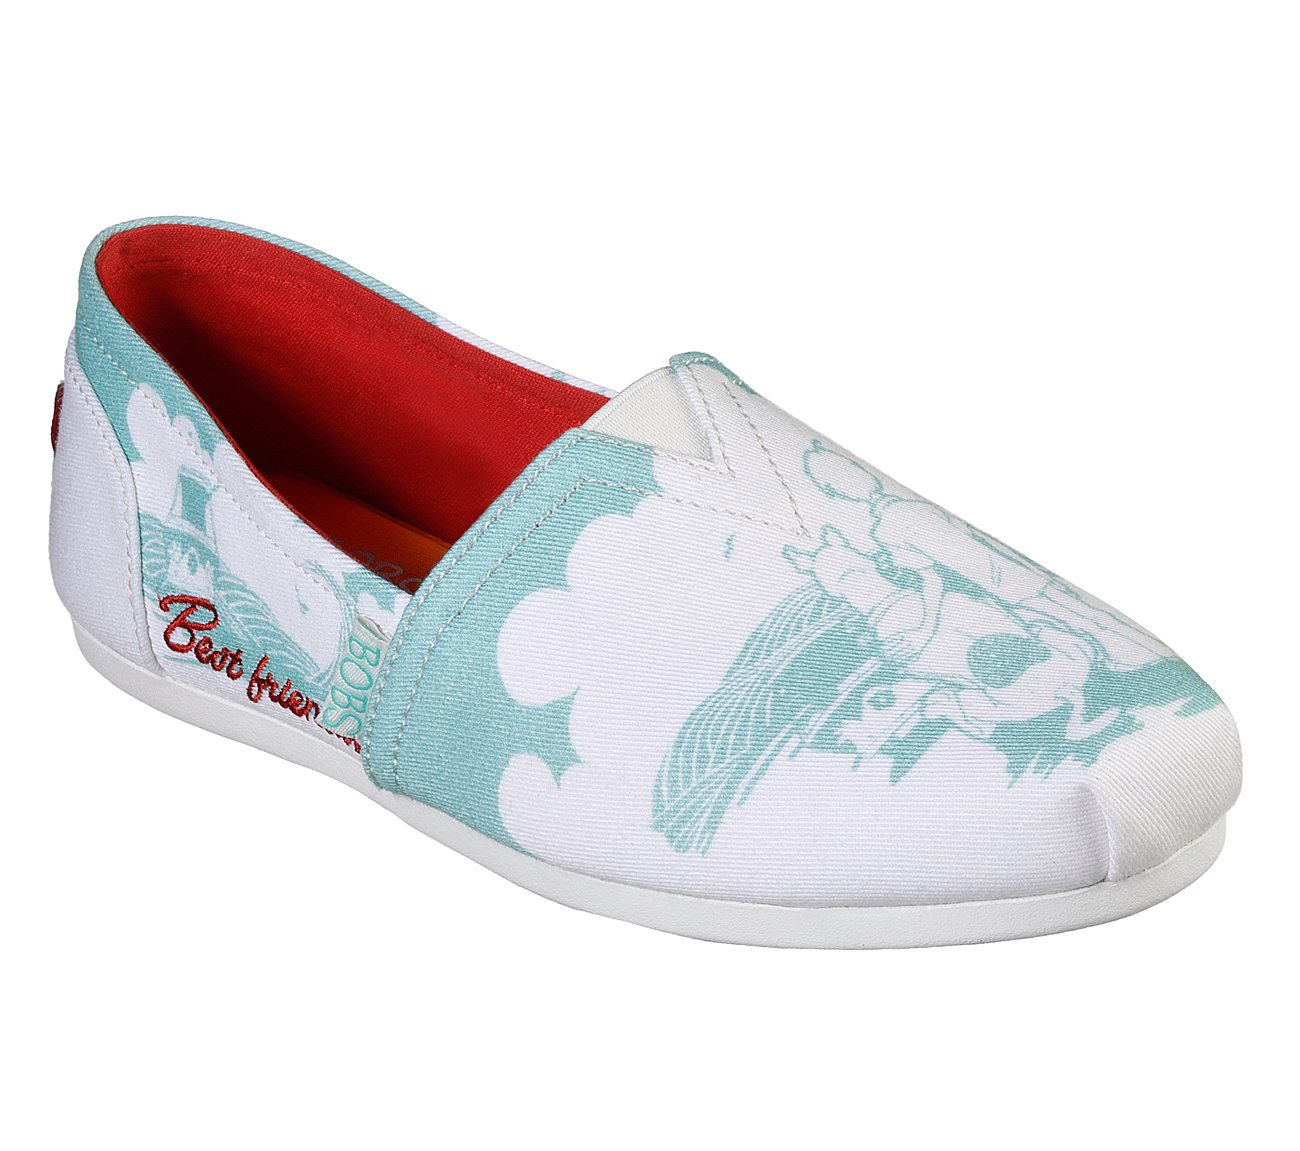 4f83f2ce3828 Buy SKECHERS BOBS Plush - Besties BOBS Shoes only  47.00